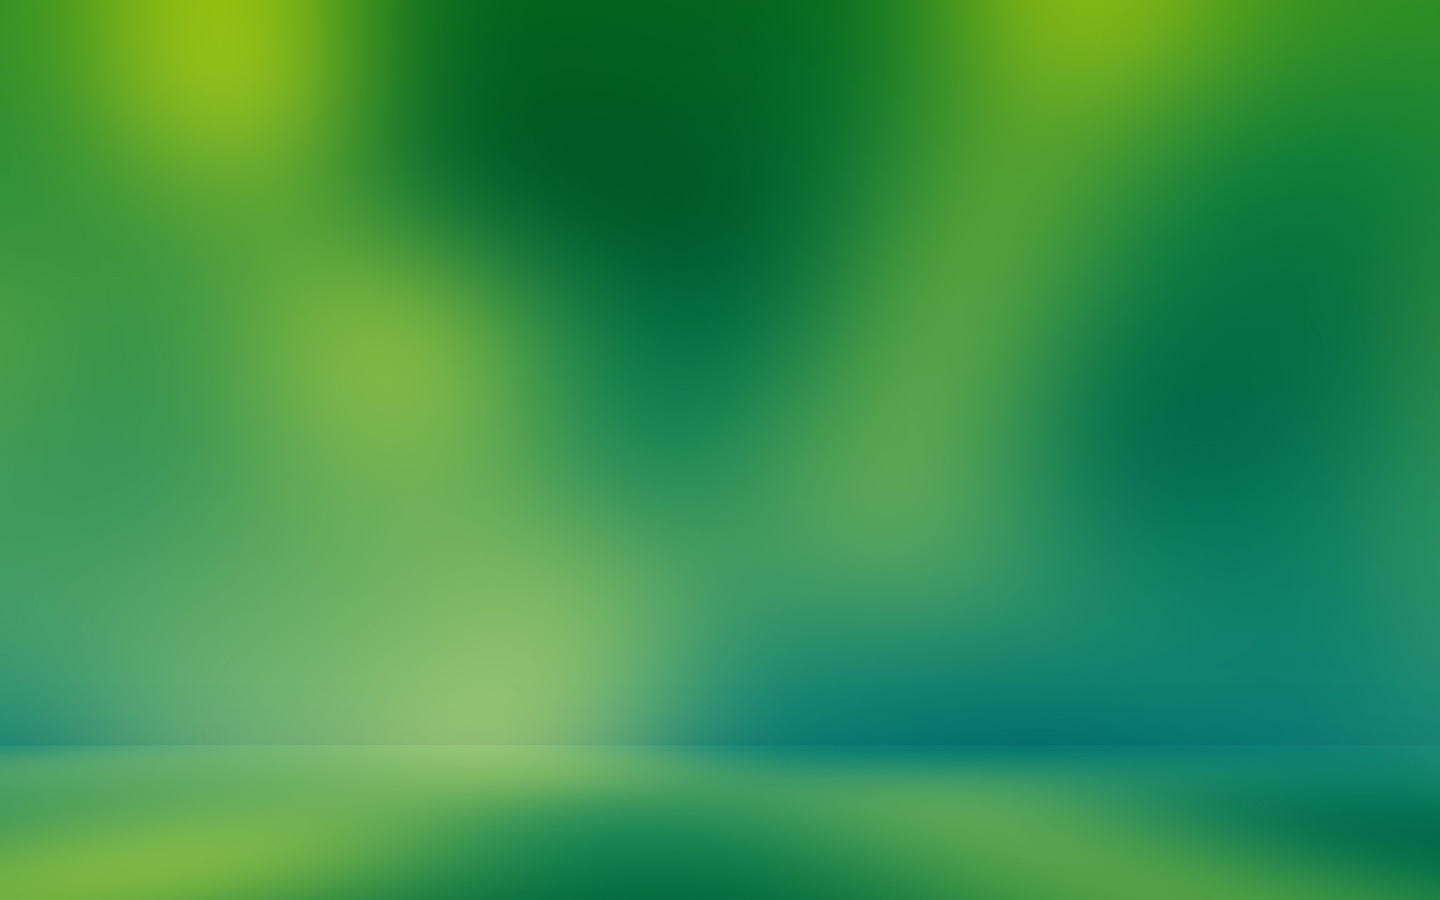 cabtute Plain Abstract Backgrounds 1440x900